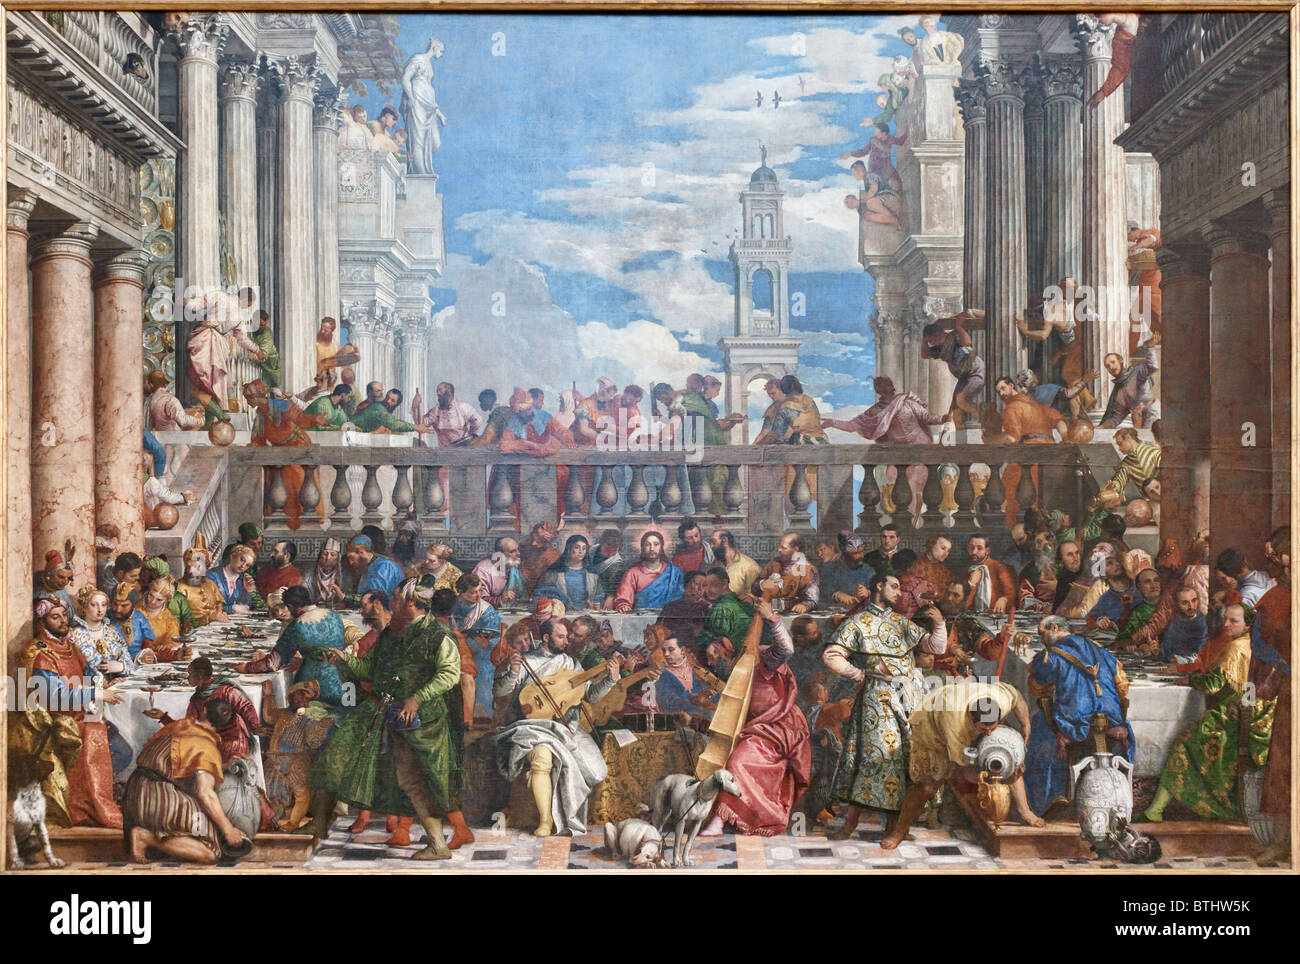 Wedding Feast at Cana Paolo CALIARI VERONESE, Louvre ...